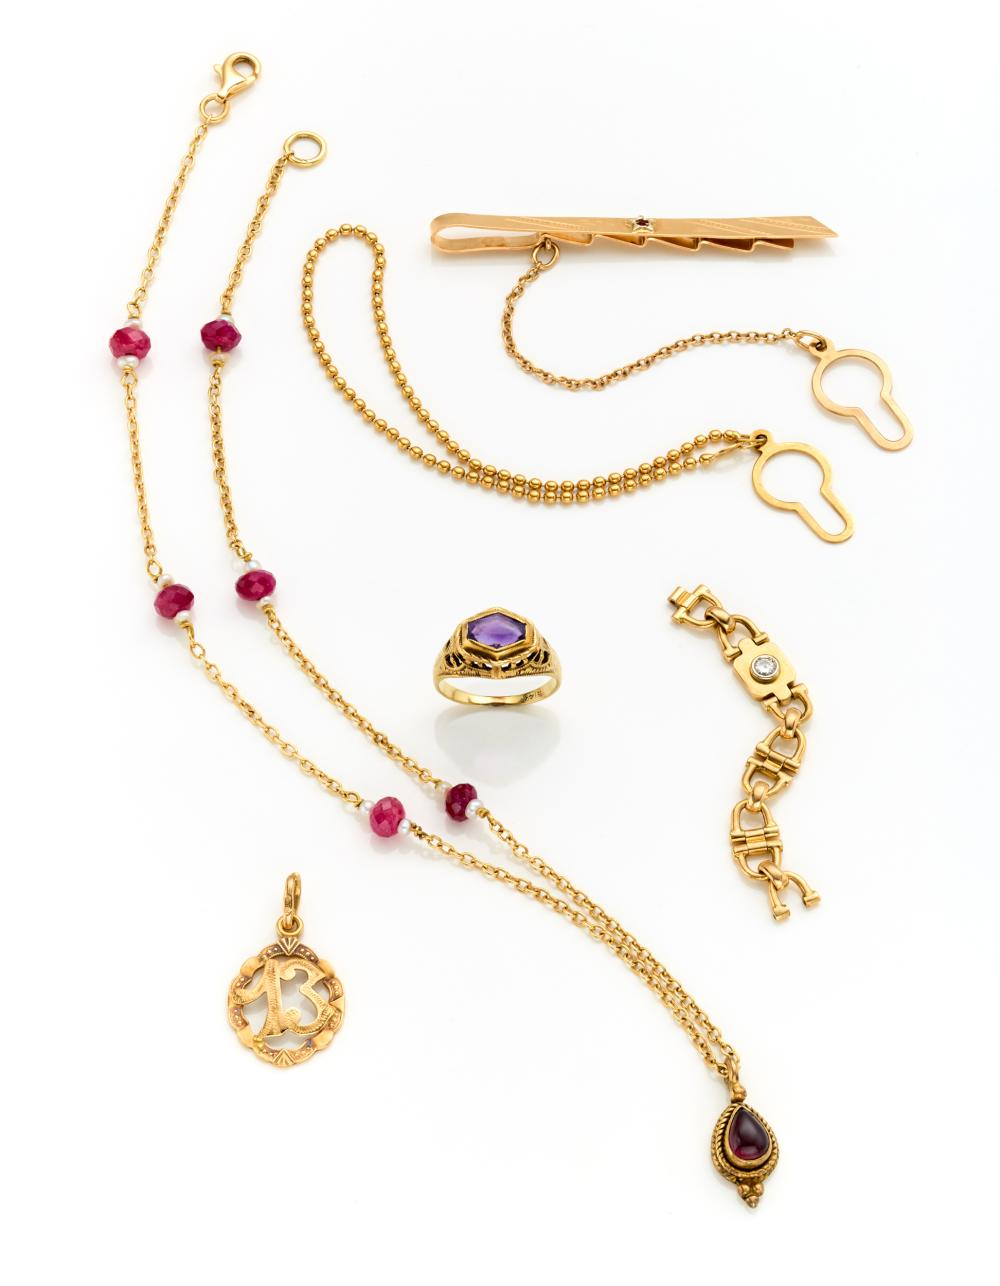 """Yellow 18K gold lot consisting of a tie clip, a pendant with the number """"13,"""" a red stone and pearl necklace of cm 35.5 circa, a link ring signed Cartier n ° 202668 46 and a yellow 12K chiseled gold ring with a hexagonal amethyst size 3.5/..."""